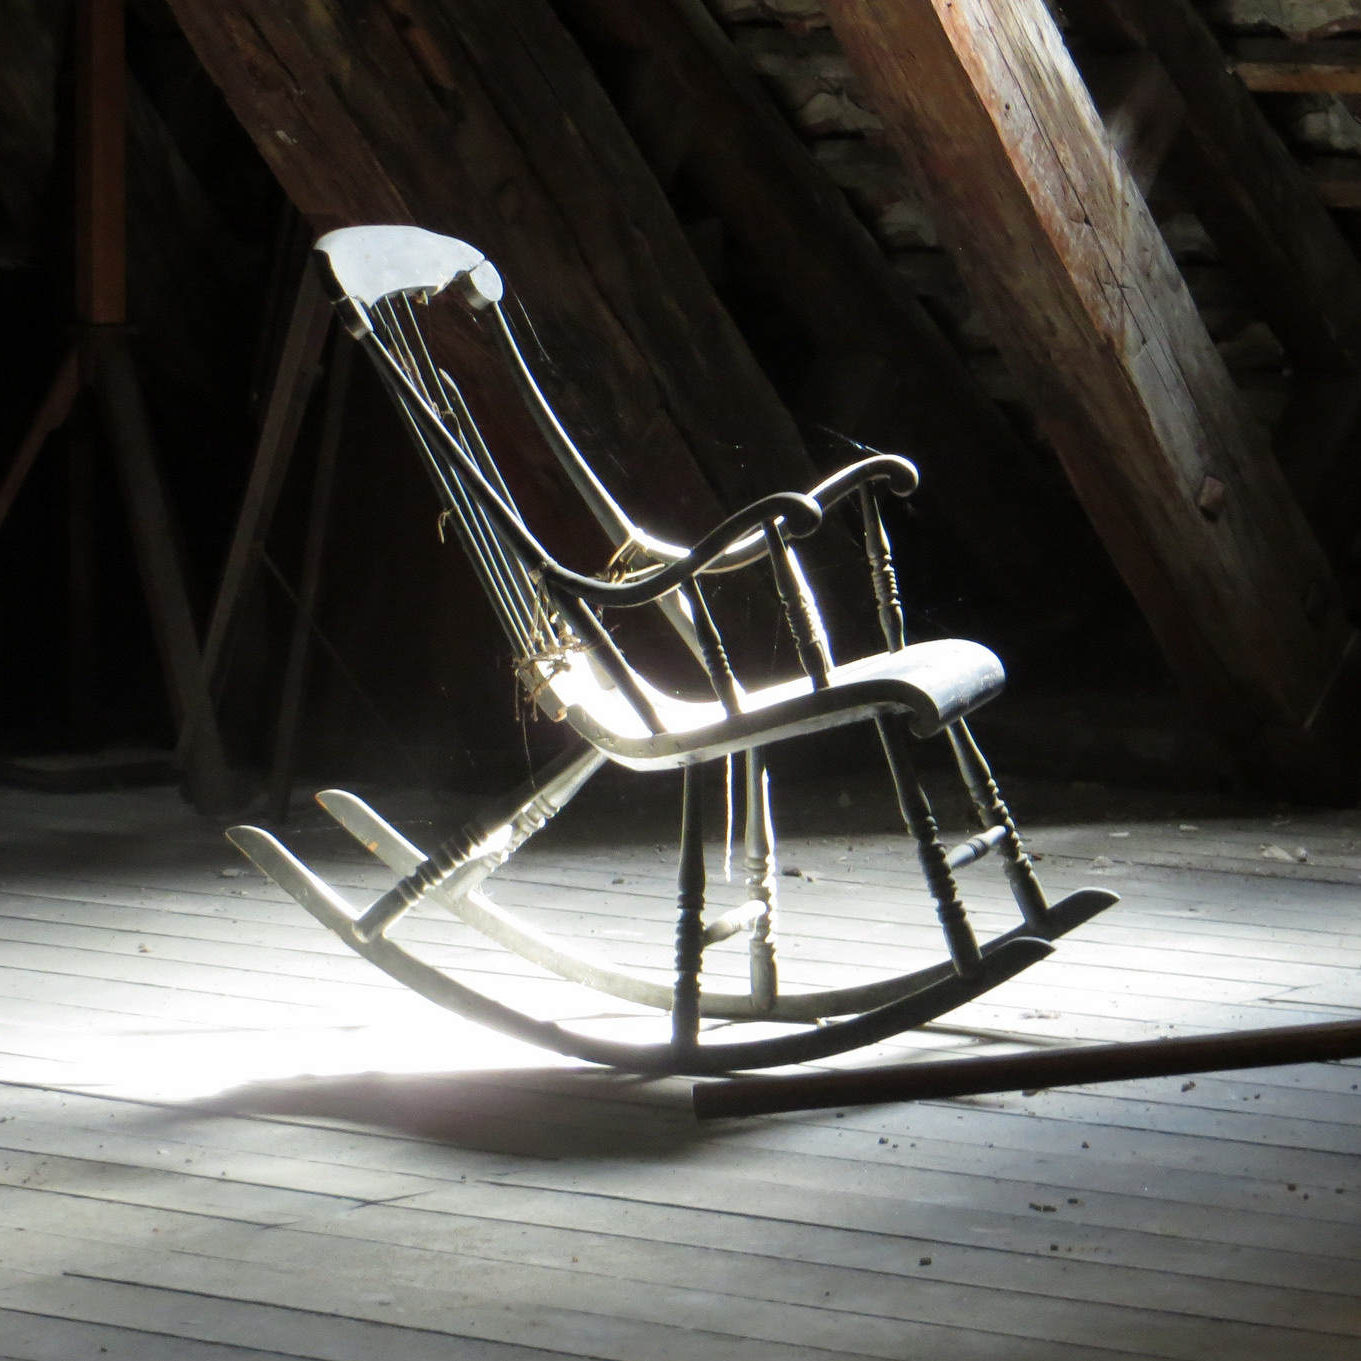 Rocking chair in an attic